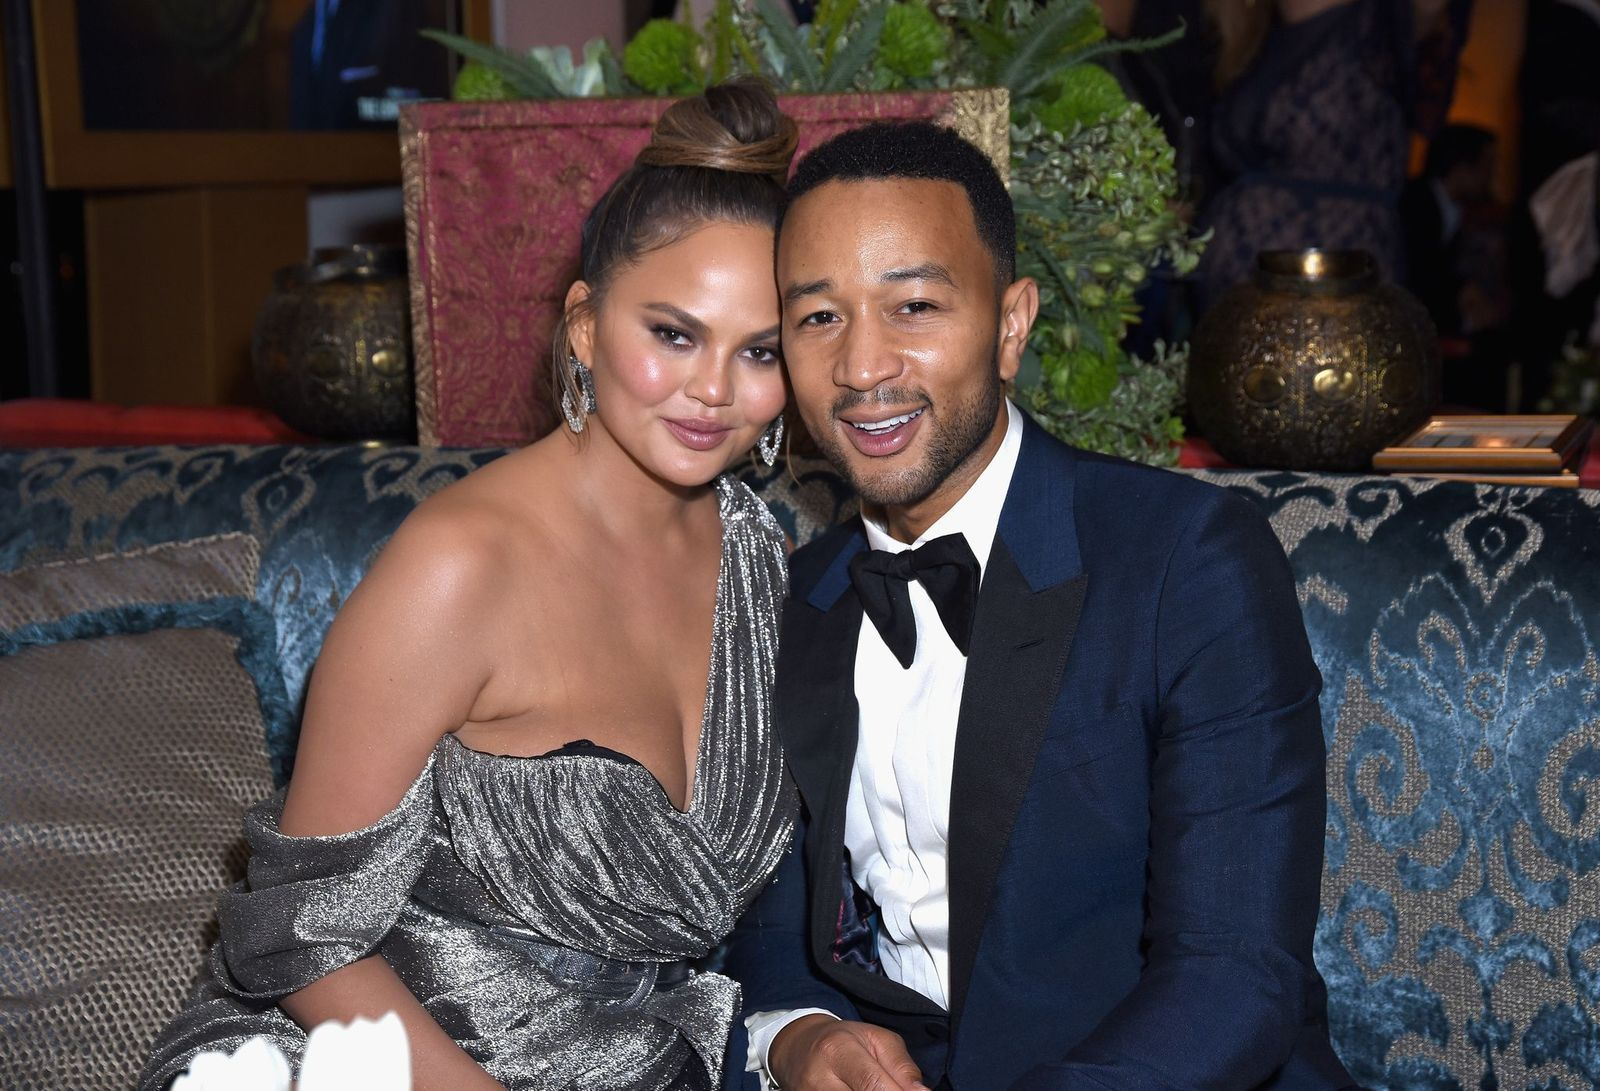 Chrissy Teigen and John Legend at Hulu's Emmy Party at Nomad Hotel on September 17, 2018, in Los Angeles, California | Photo: Presley Ann/Getty Images